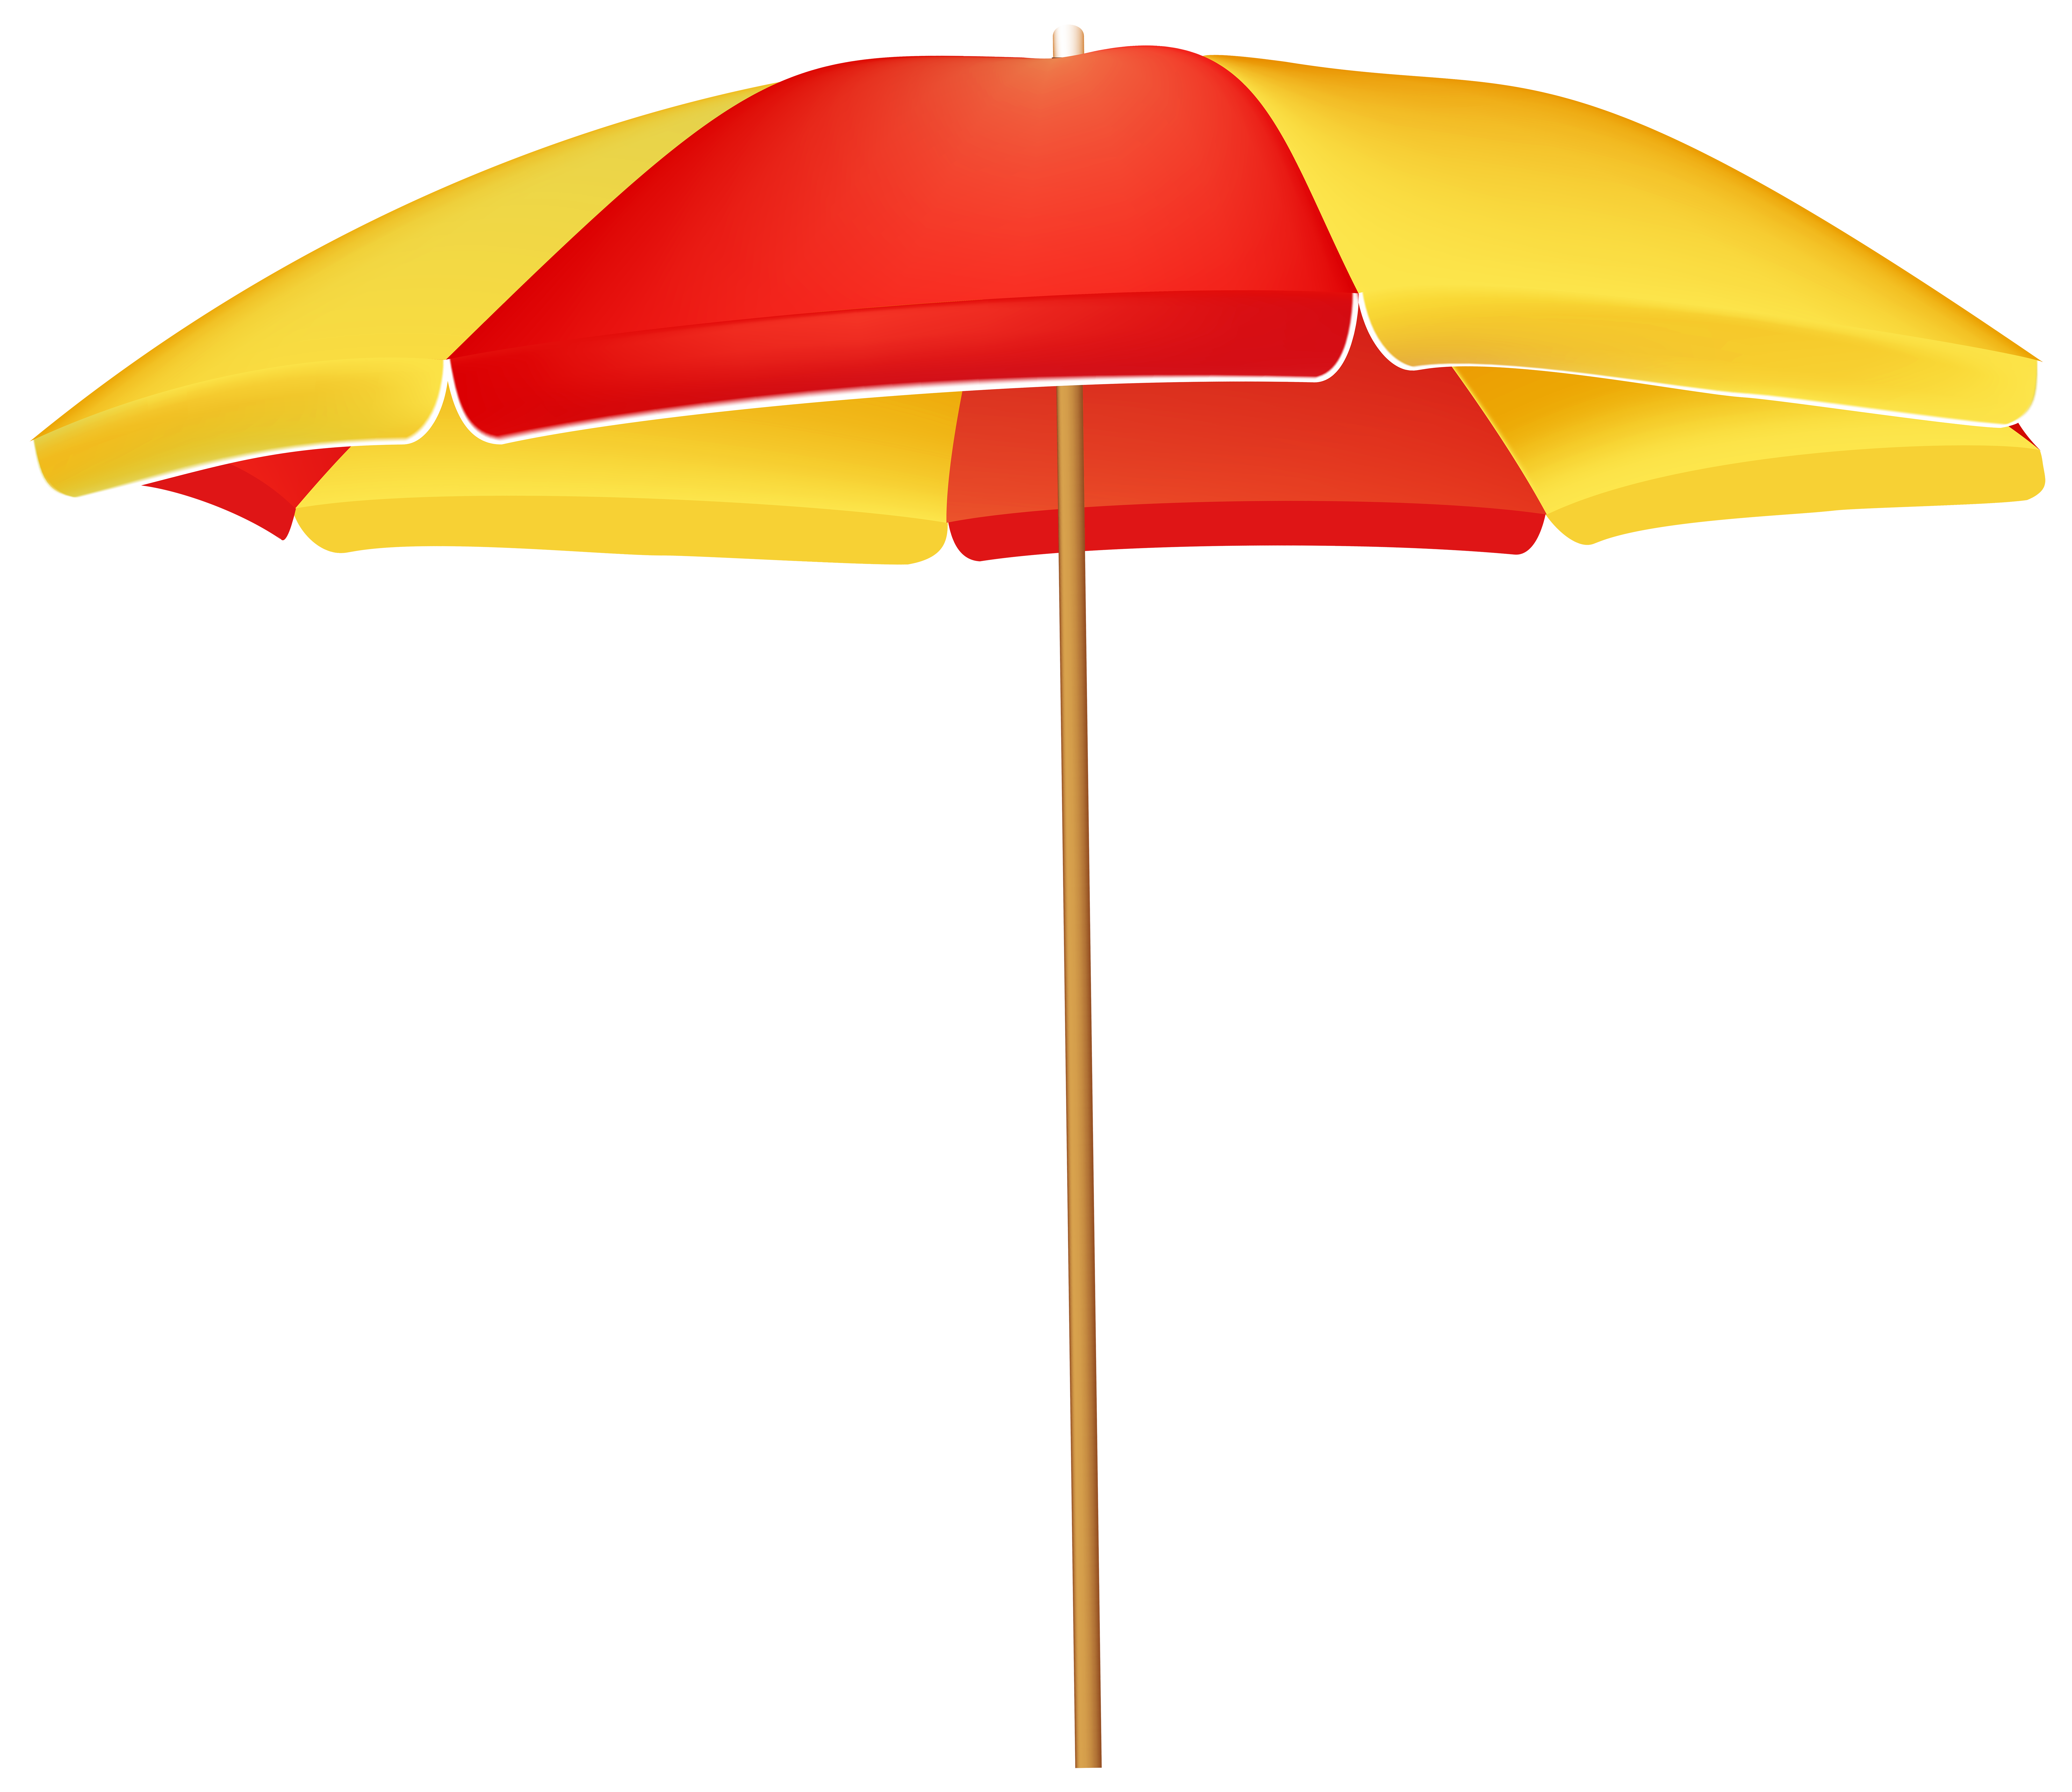 Shade from sun clipart clip art freeuse Beach Umbrella Silhouette at GetDrawings.com | Free for personal use ... clip art freeuse